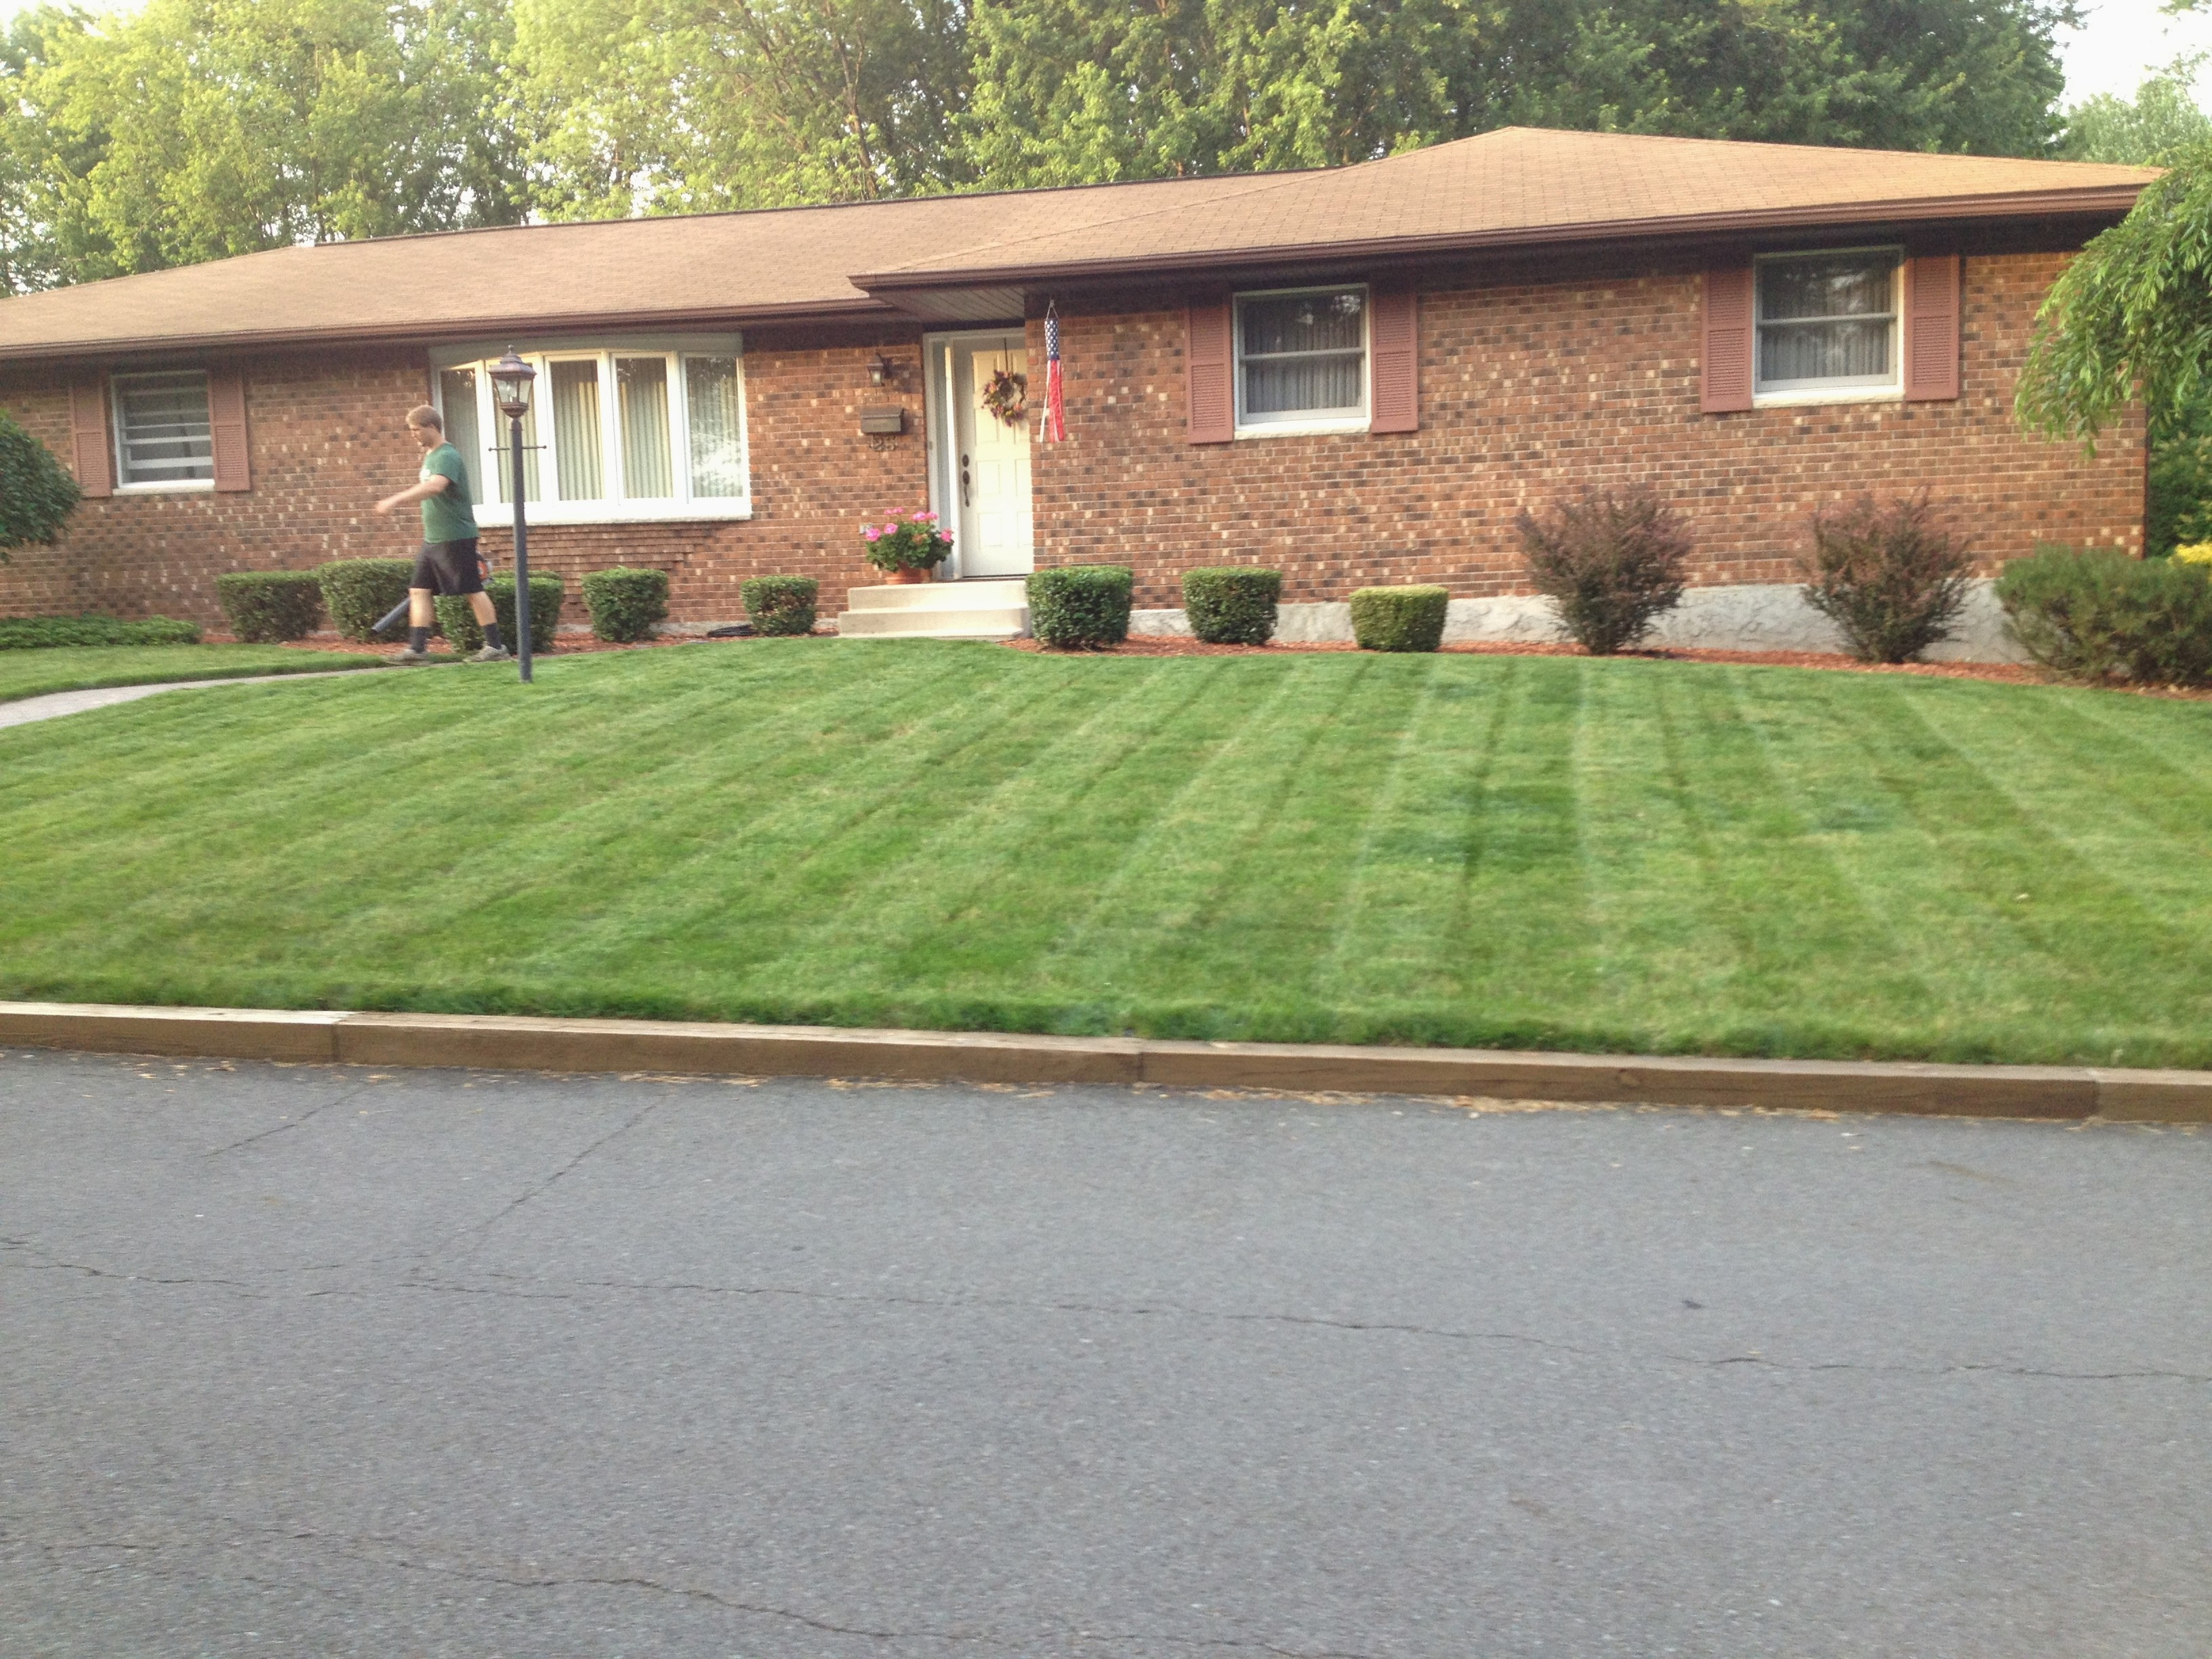 Northeast Pennsylvania Lawn Service and Maintenance